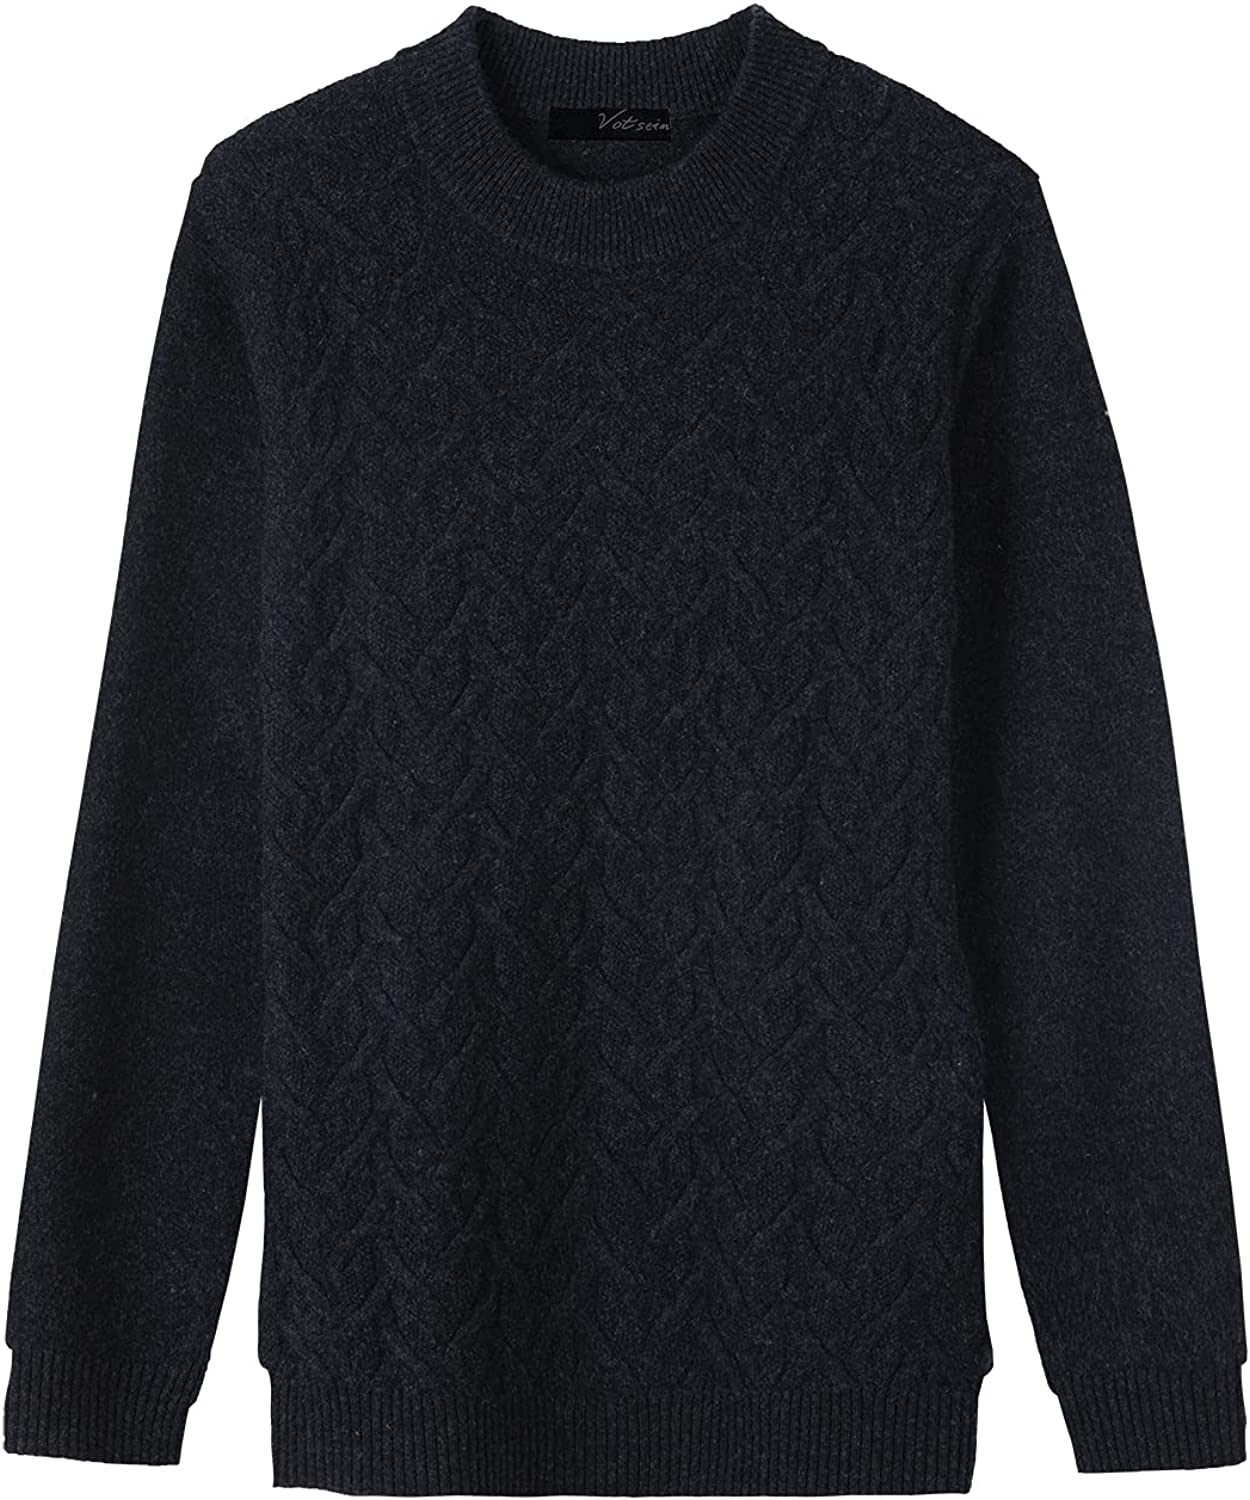 votsein Men's Casual Solid Crew Neck Wool Sweater Long Sleeve Pullover